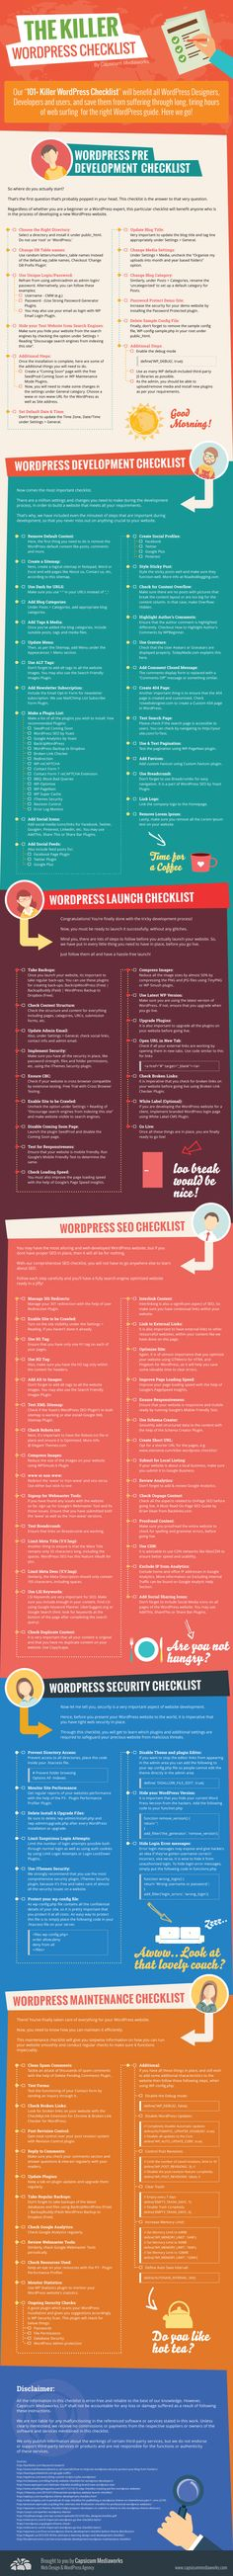 WordPress Checklist (Infographic): 101+ Easy Steps to Follow Muy completa, 101 tareas divididas en 9 secciones desde la instalación, el lanzamiento al mantenimiento.   Getting Started WordPress Pre Development Checklist WordPress Development Checklist Wor